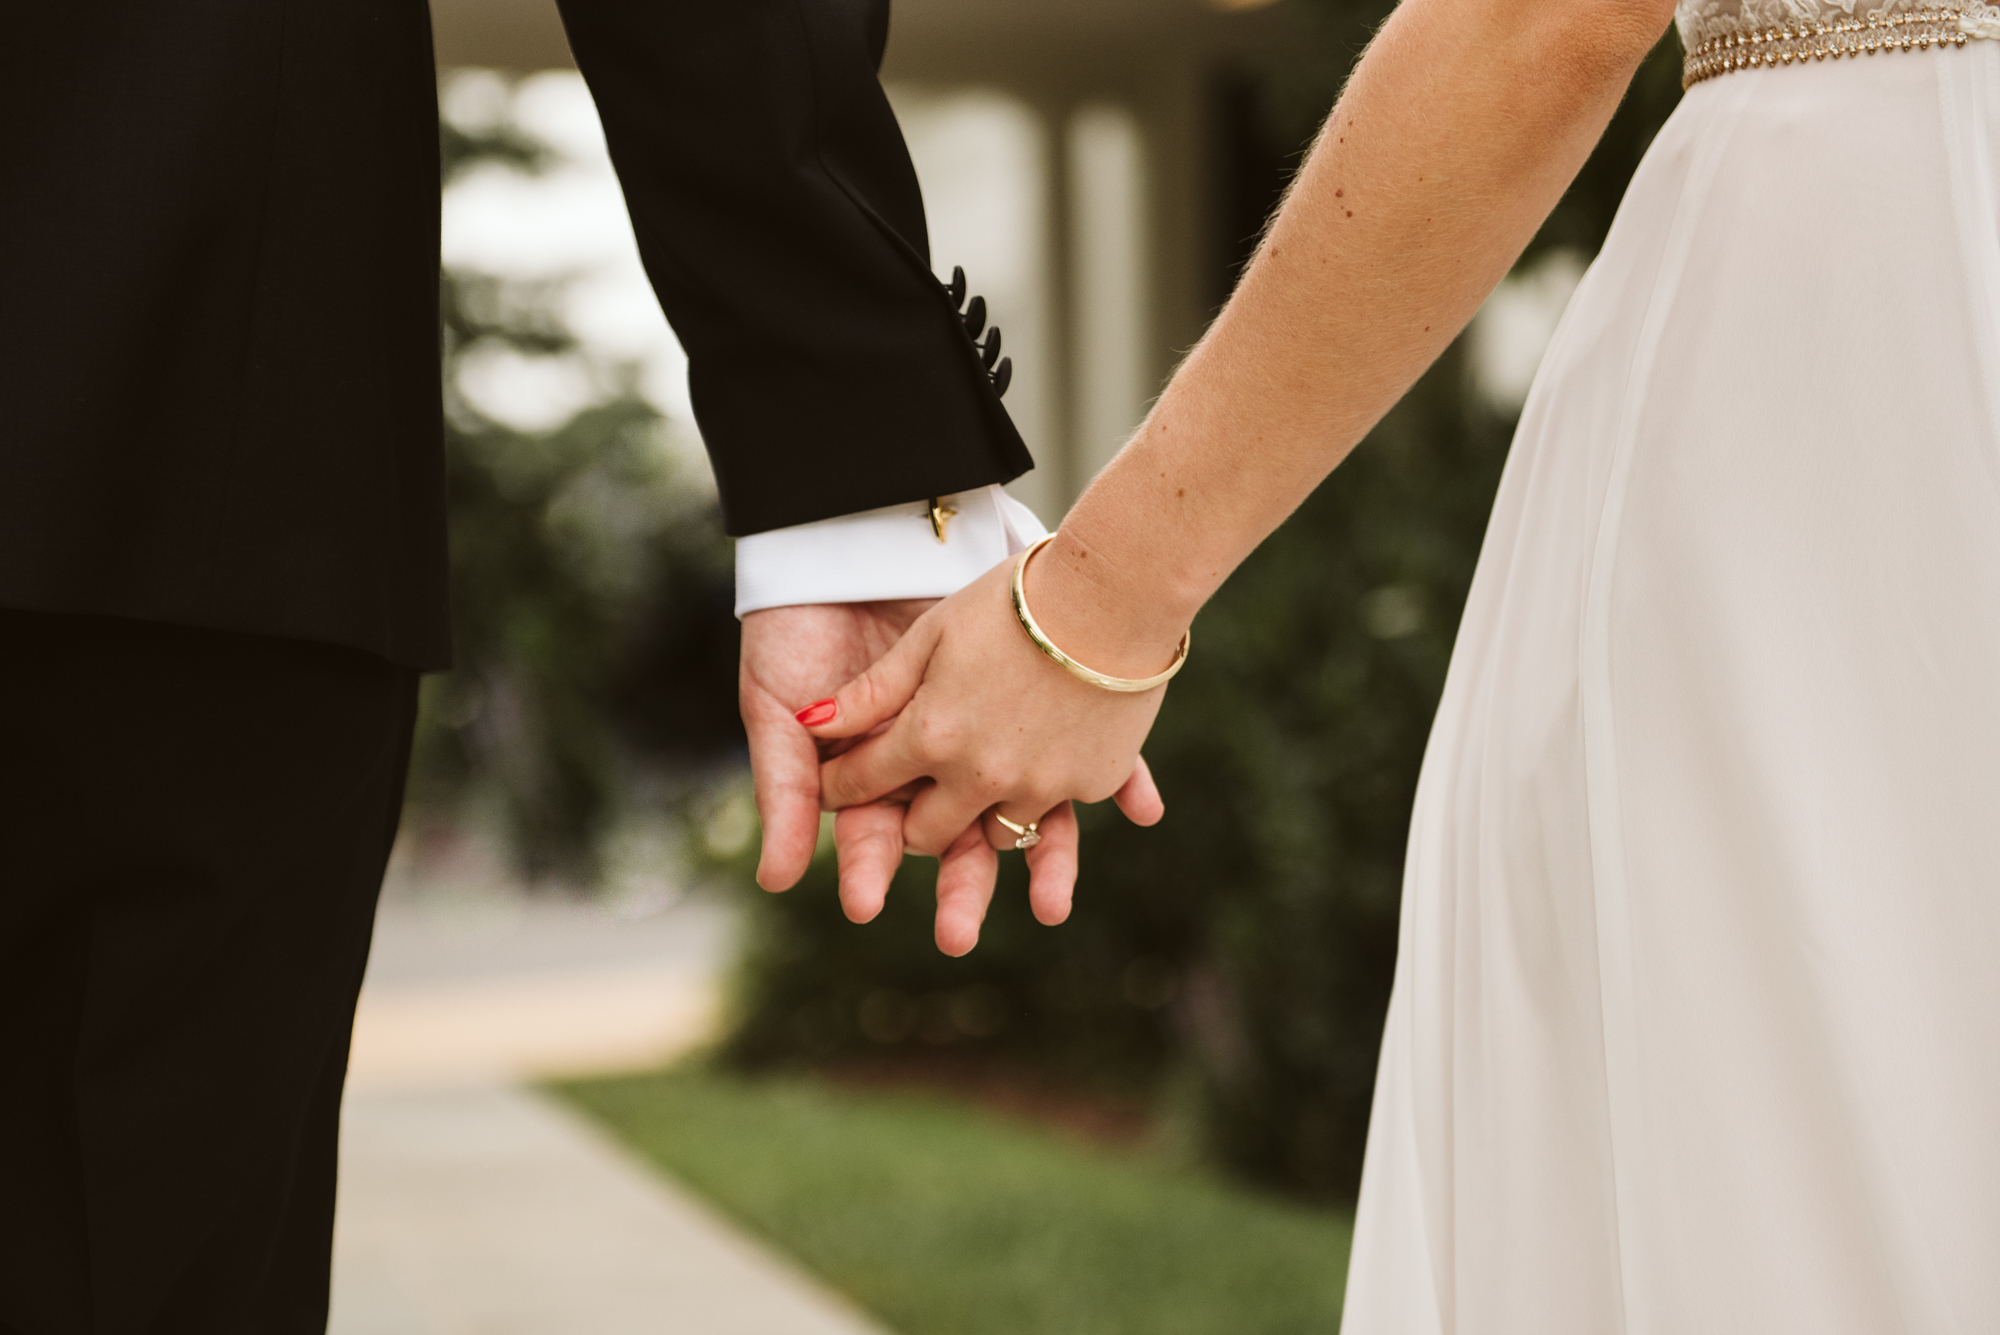 Elegant, Columbia Country Club, Chevy Chase Maryland, Baltimore Wedding Photographer, Classic, Traditional, Jewish Wedding, Couple Holding Hands, Wedding Jewelry, Boone & Sons Rings, Detail Photo